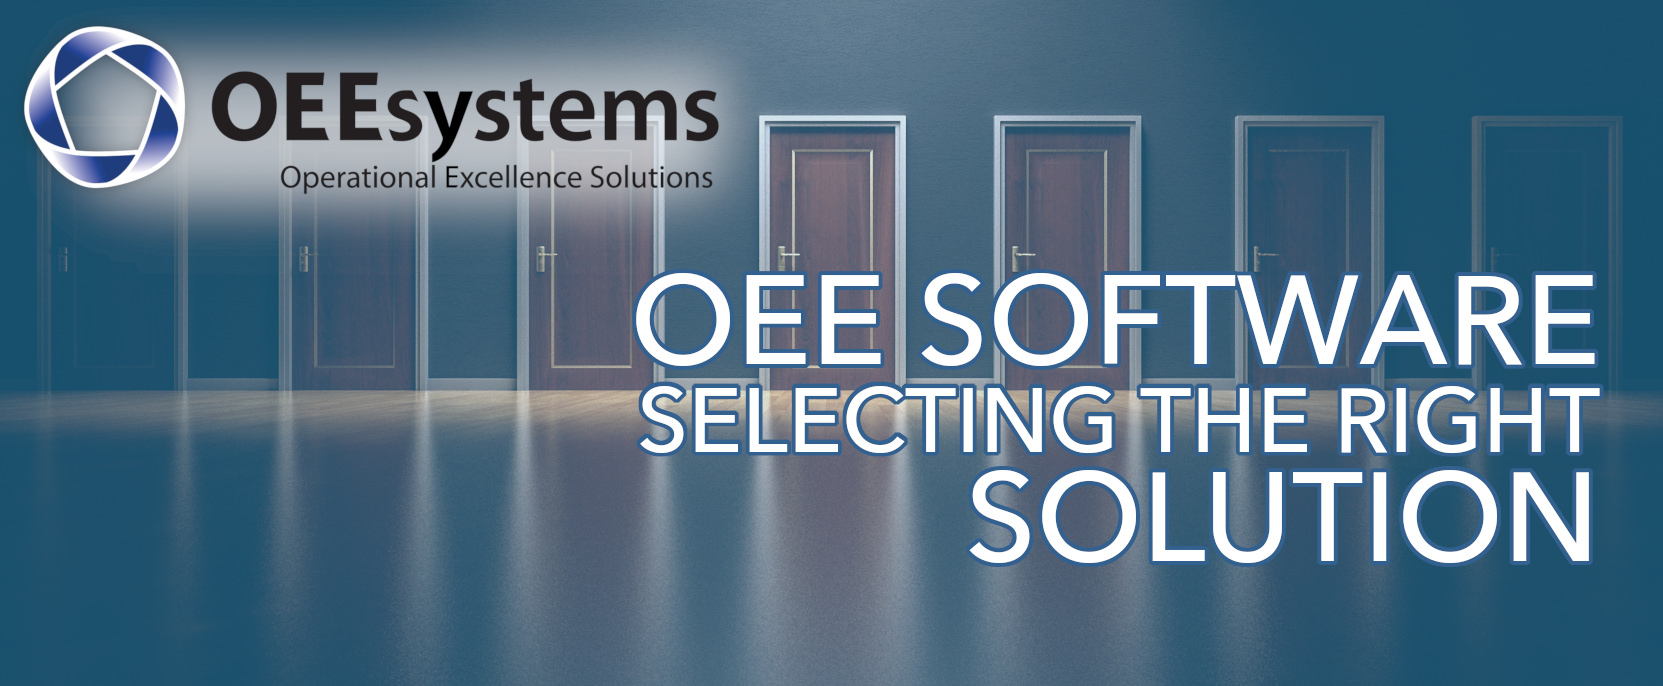 OEE Software Selection   OEEsystems